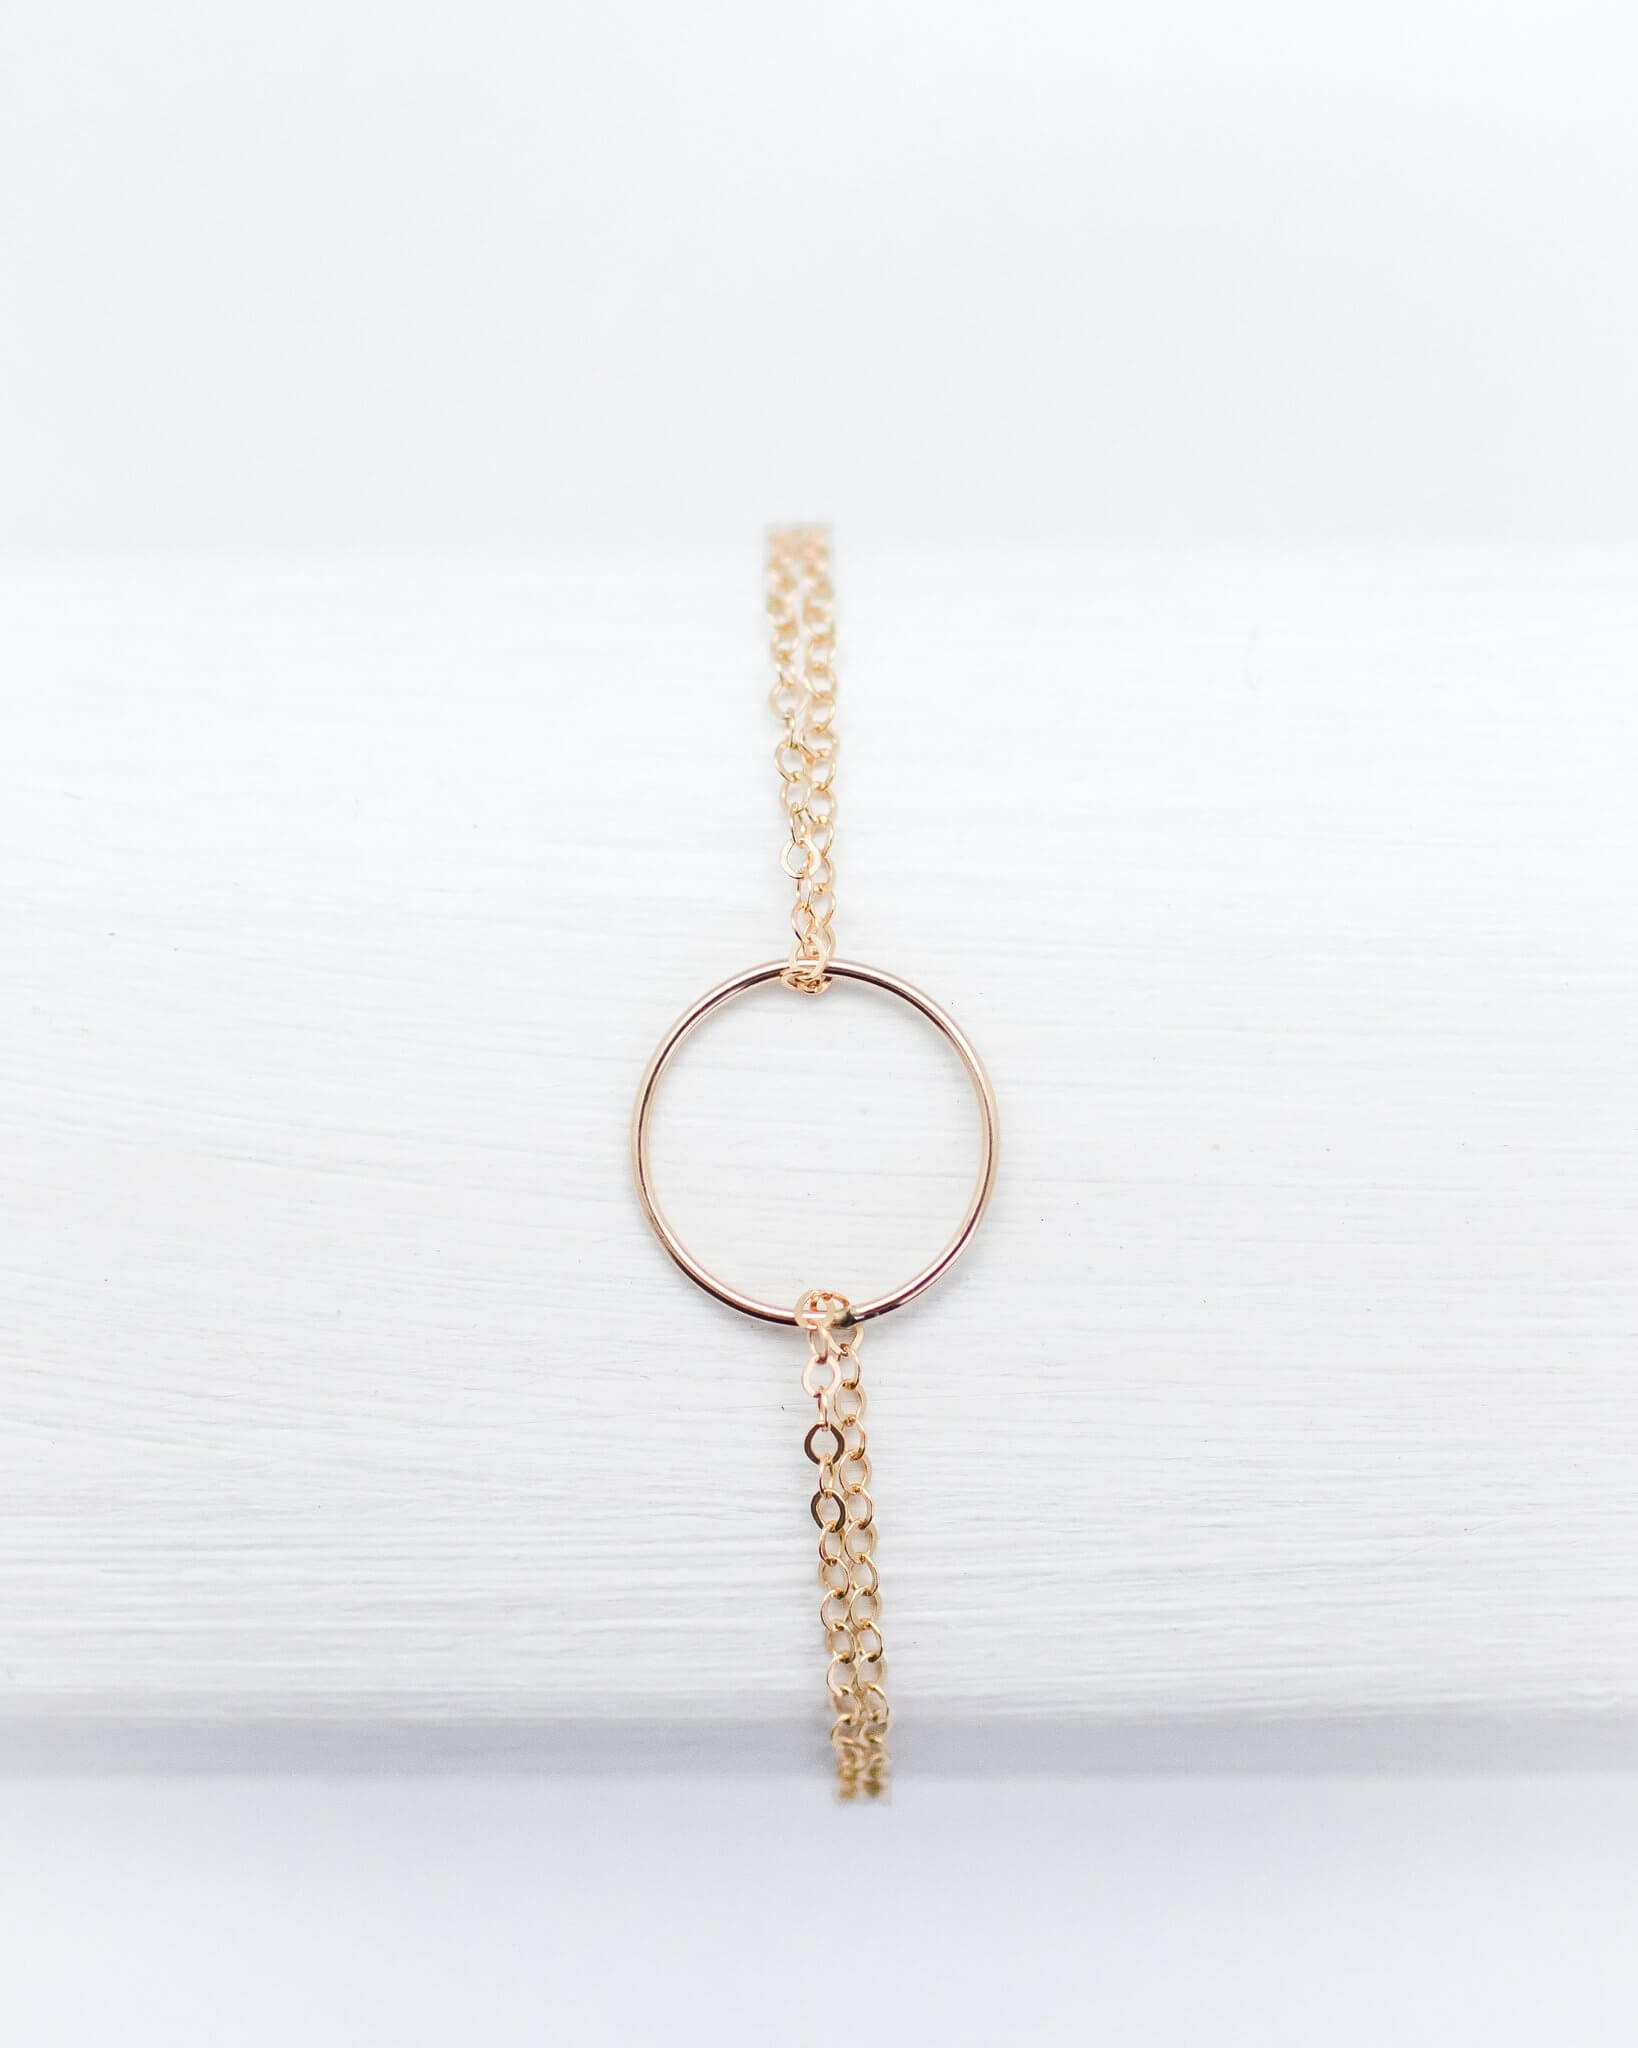 Anna Janelle Jewelry - The Forever Armband - INGAR